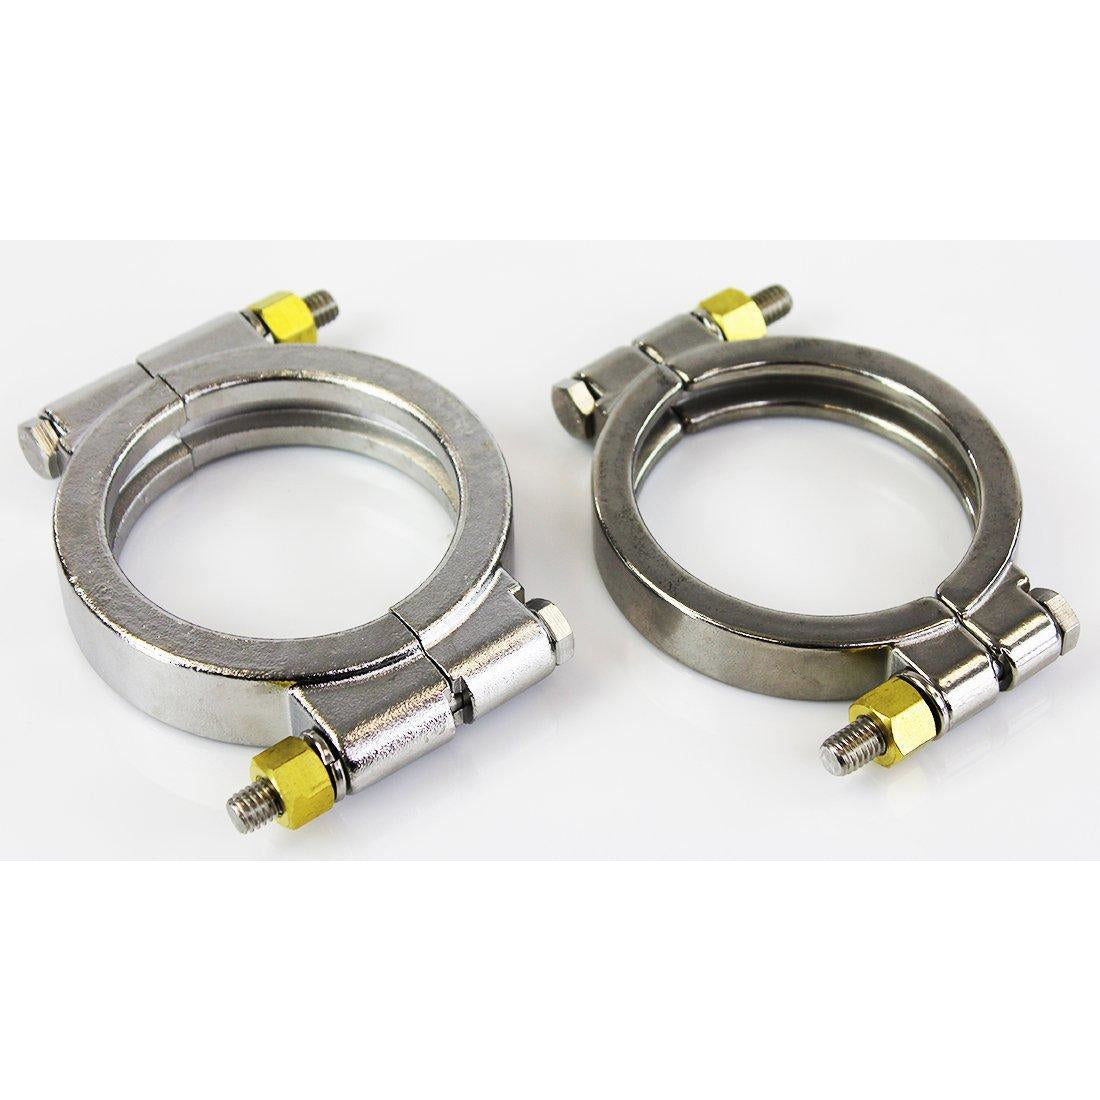 Pro Series High Pressure Clamps